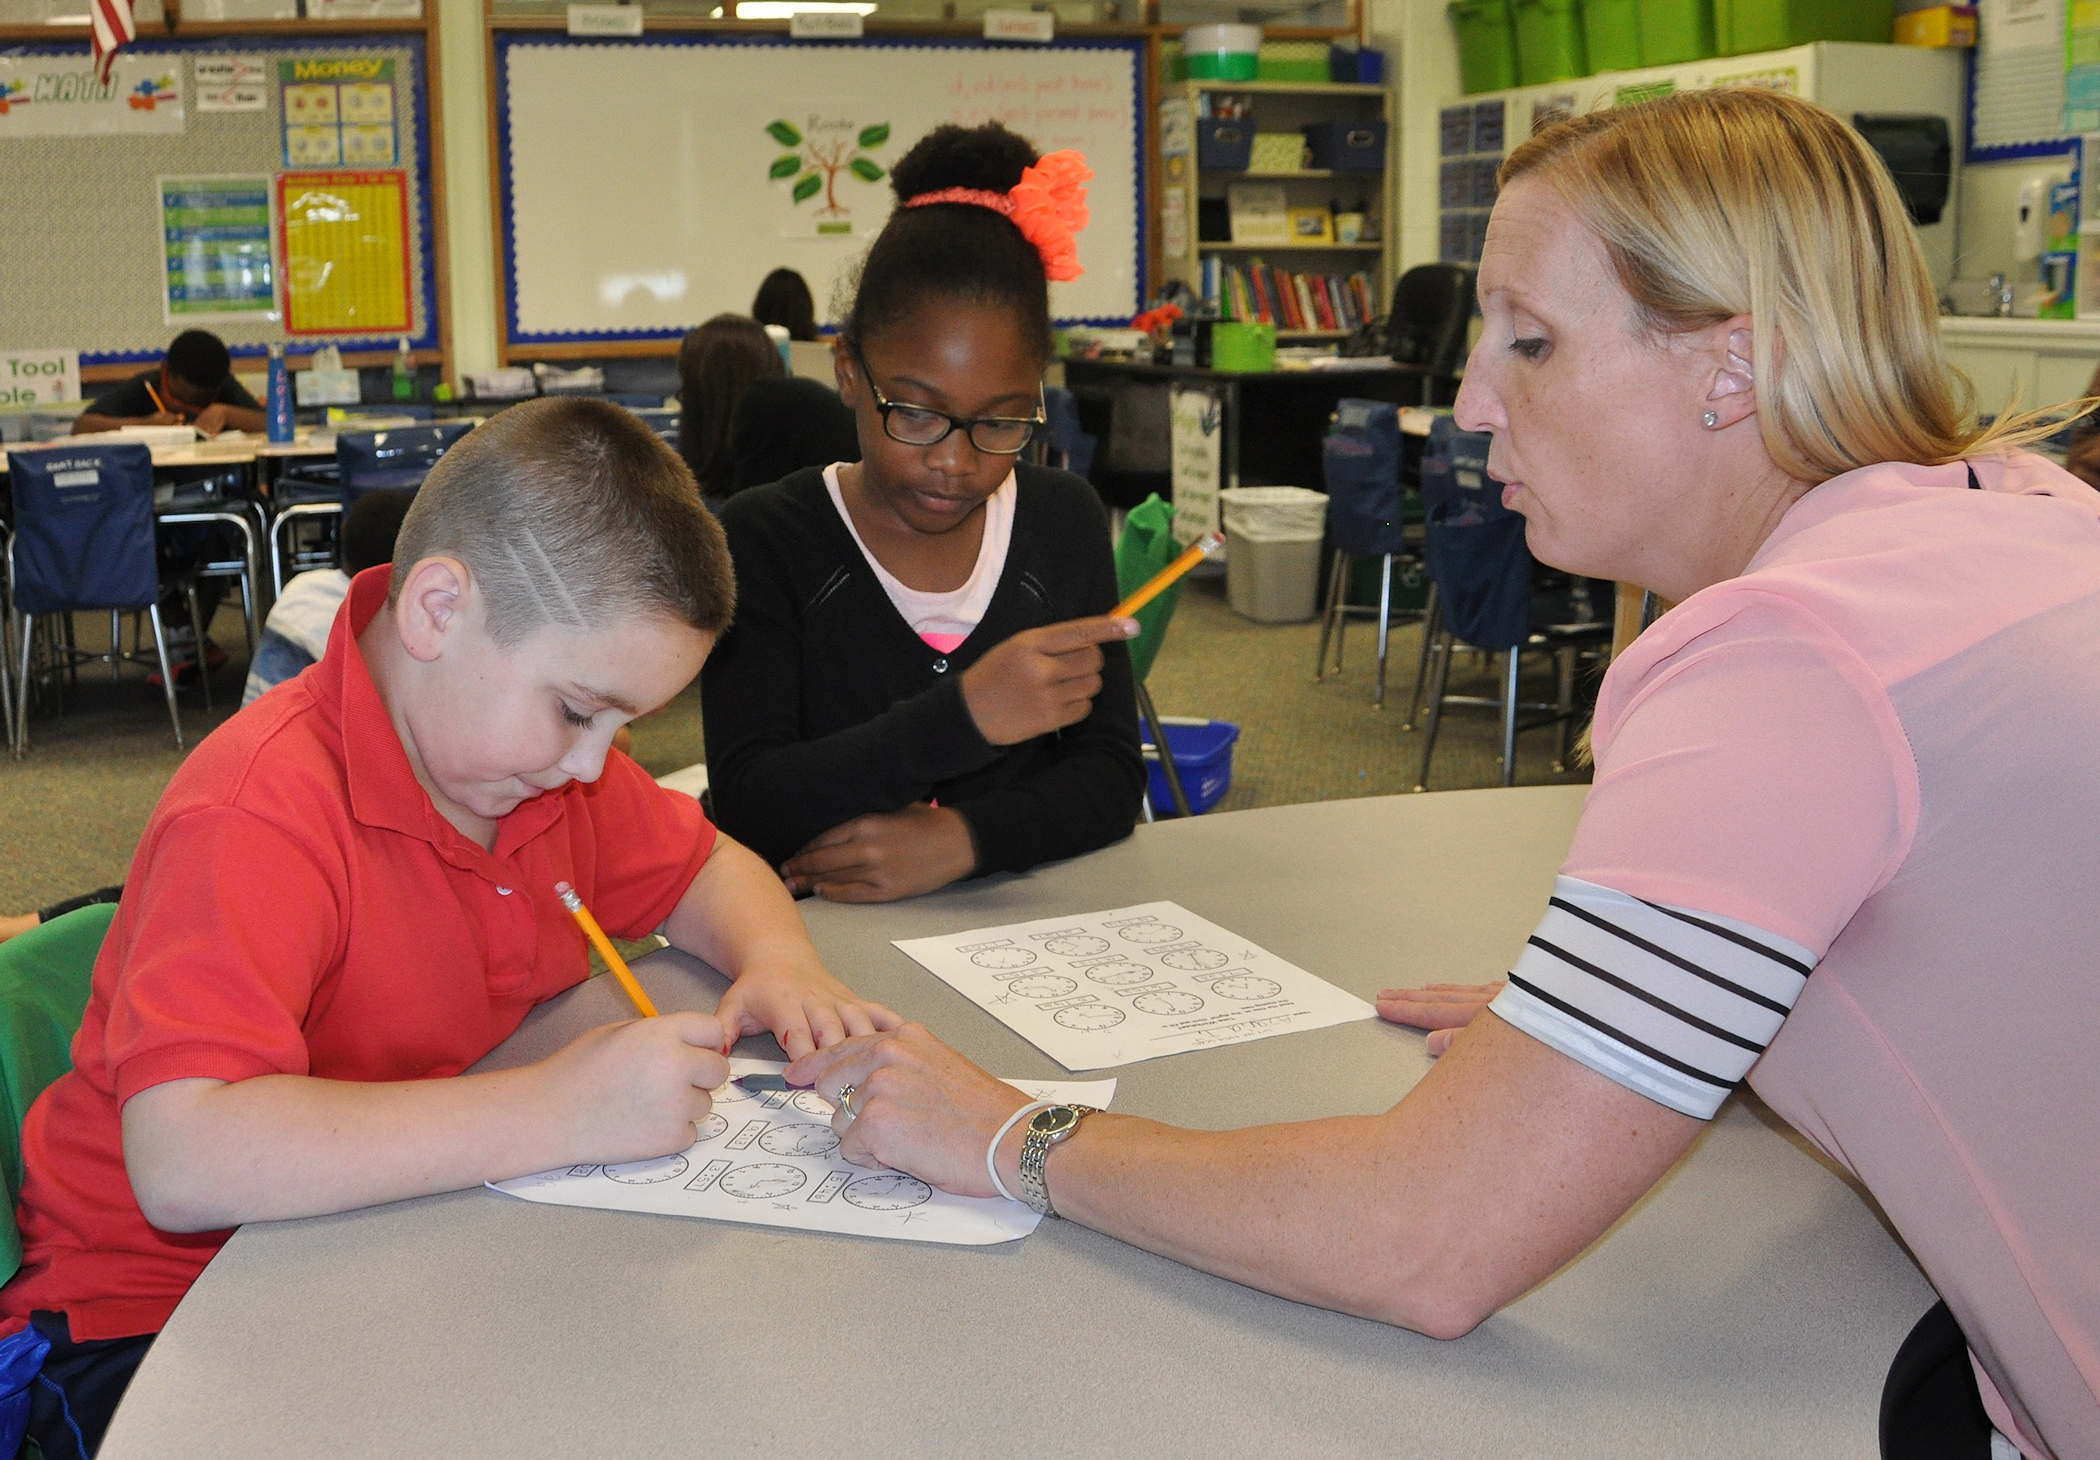 Master Teacher Amy Campbell helps current Conshohocken Elementary School third graders with a math exercise.